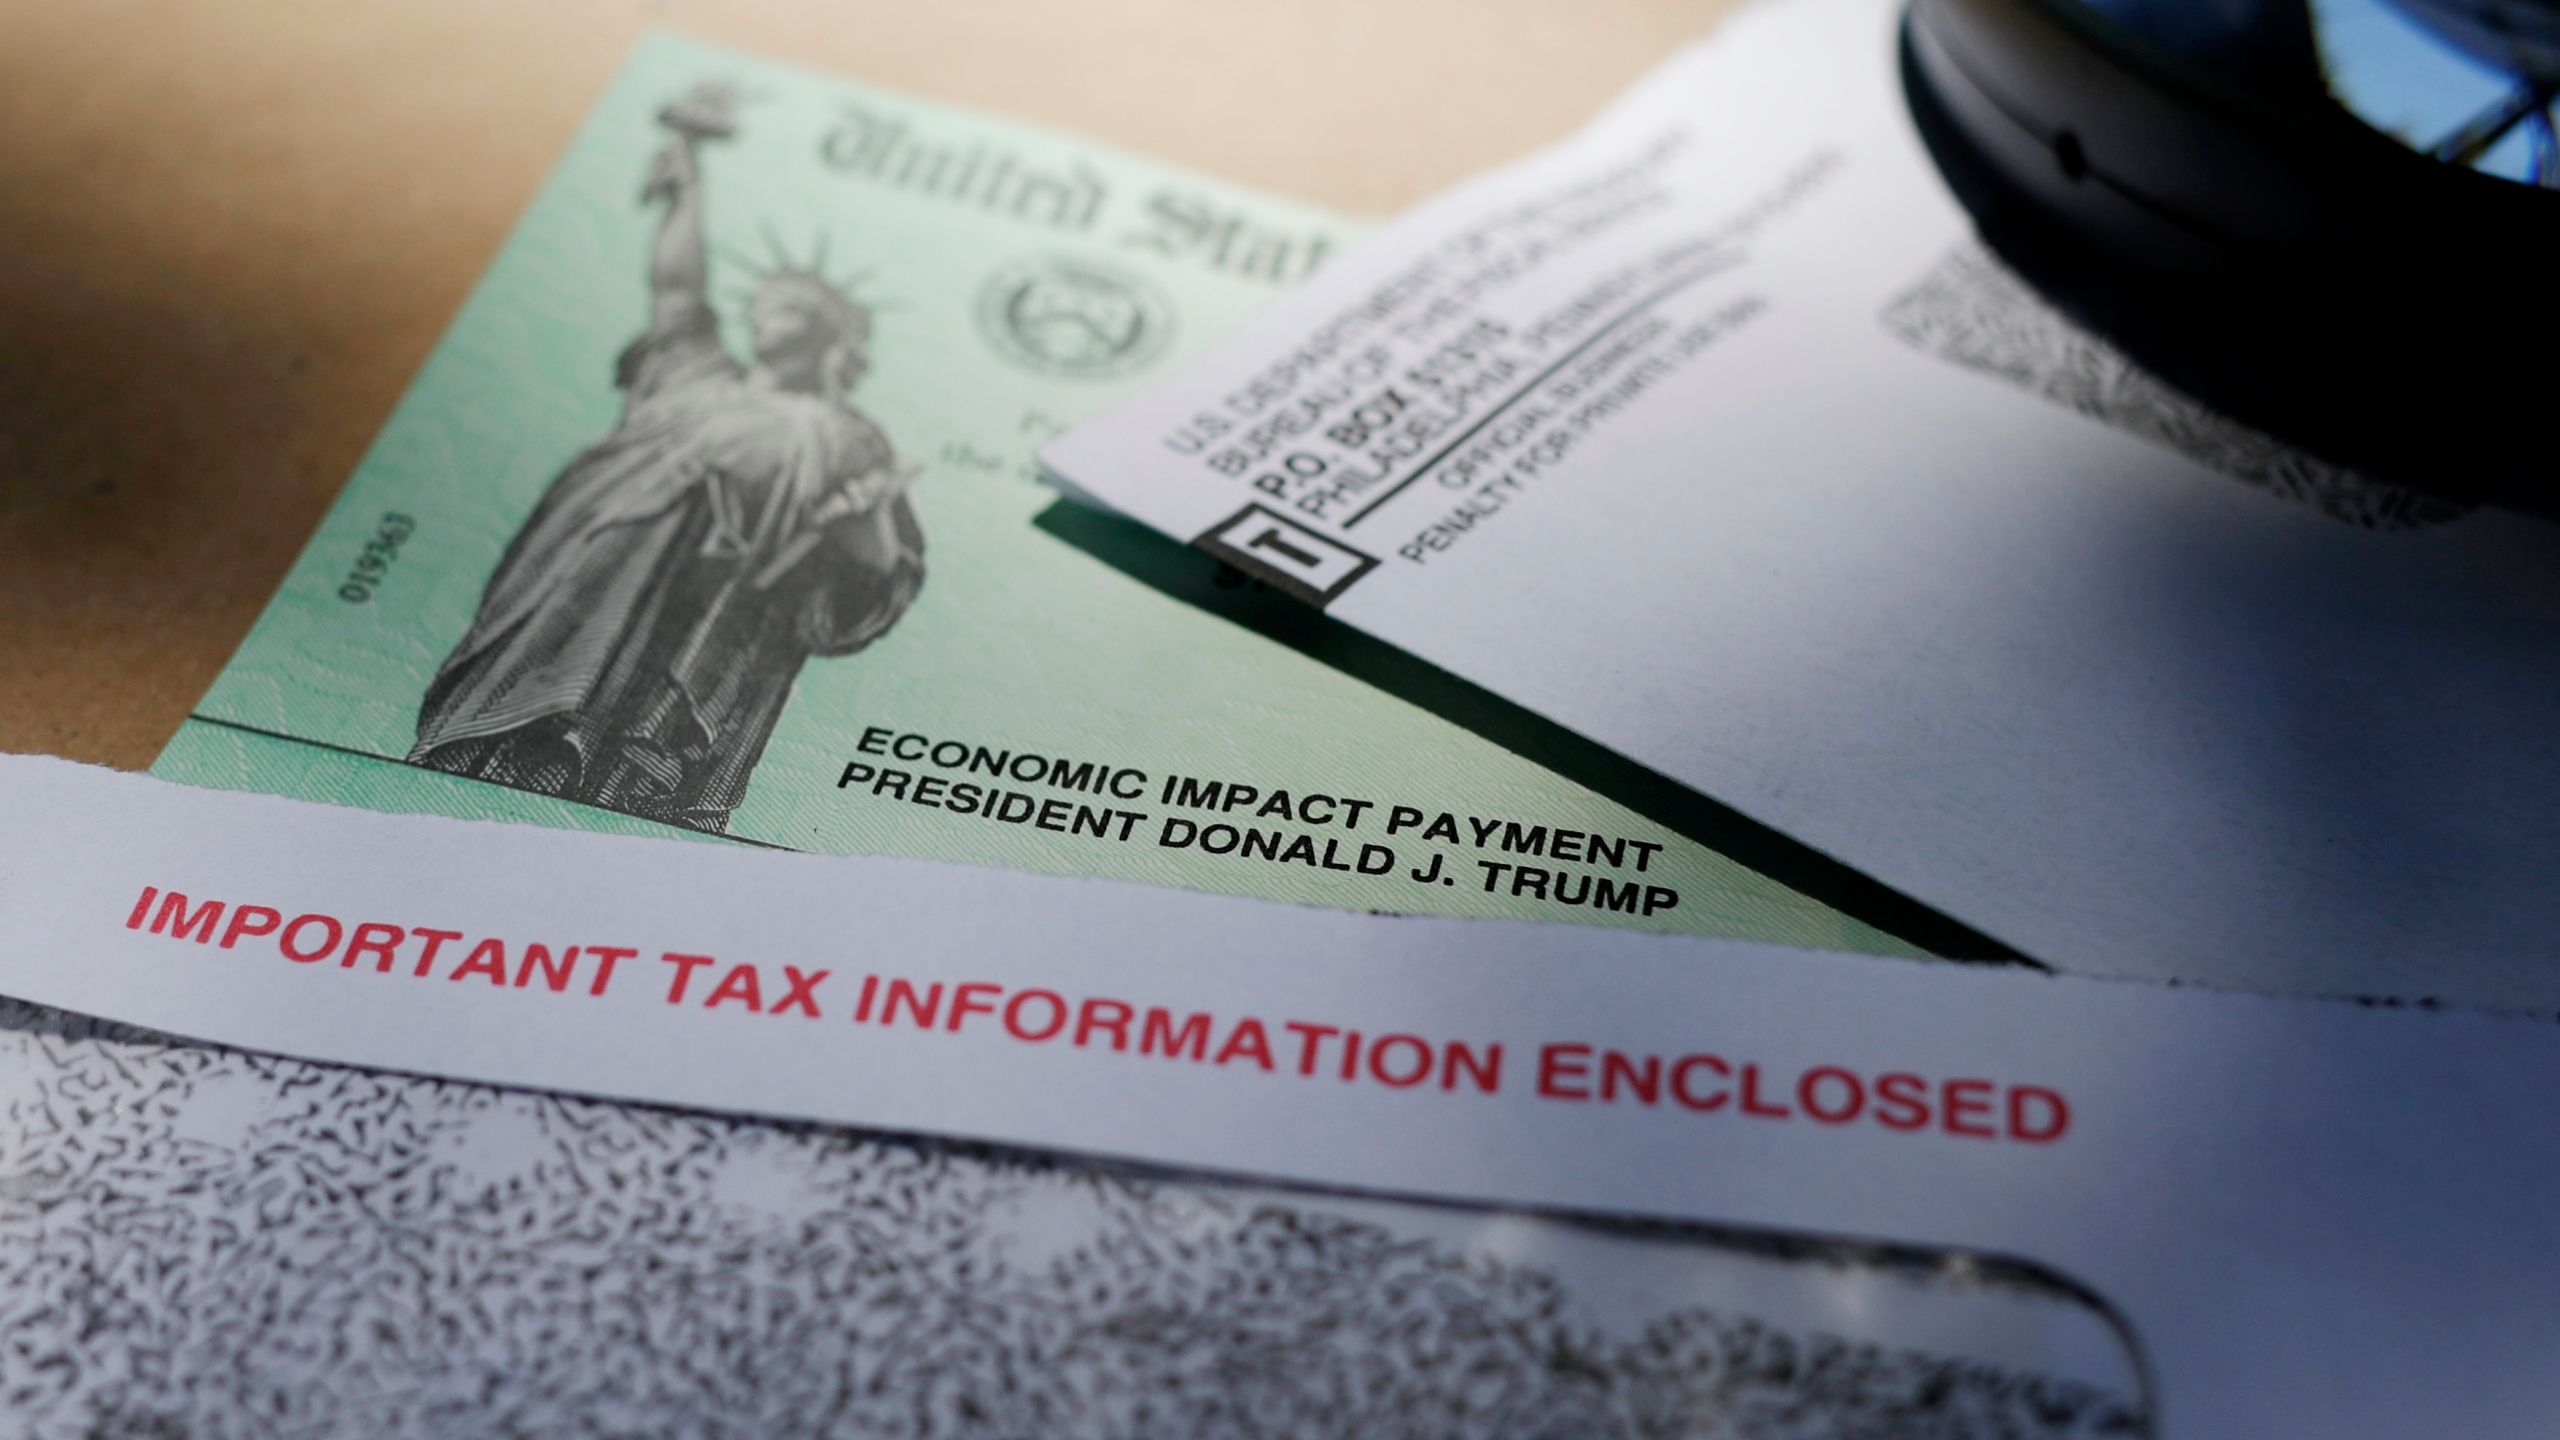 President Donald Trump's name is seen on a stimulus check issued by the IRS to help combat the adverse economic effects of the COVID-19 outbreak. There were just a few hundred coronavirus cases when Congress first started focusing on emergency spending in early March. By the end of that month, as Congress passed the massive $2.2 trillion Cares Act, cases skyrocketed above 100,000 and deaths climbed past 2,000. (AP Photo/Eric Gay, File)